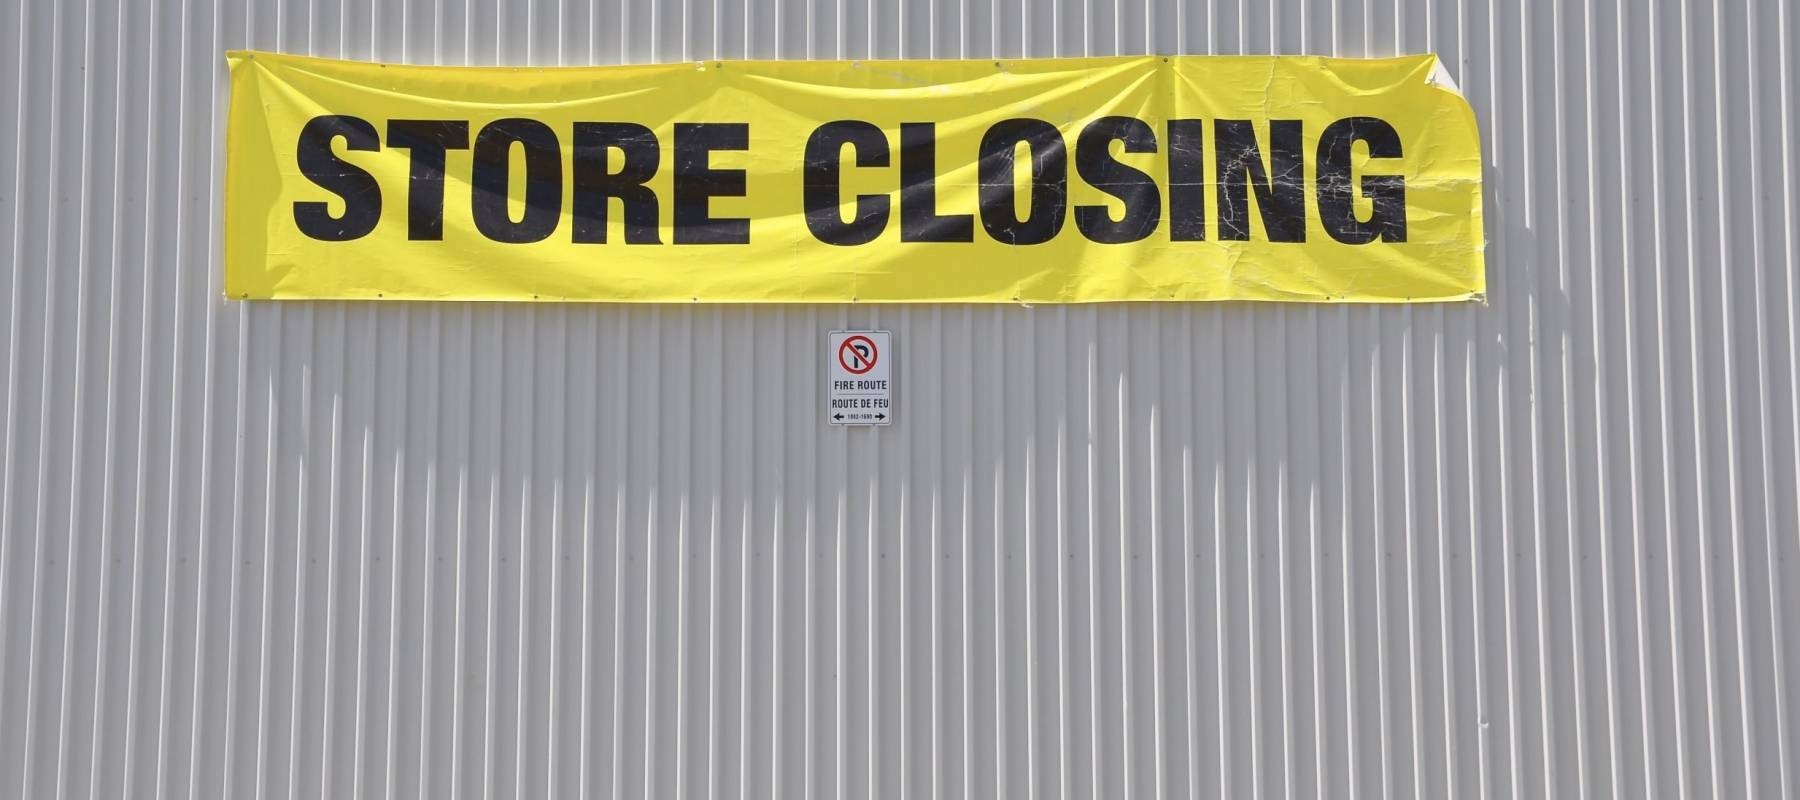 Store closing sign hanging on the concrete wall